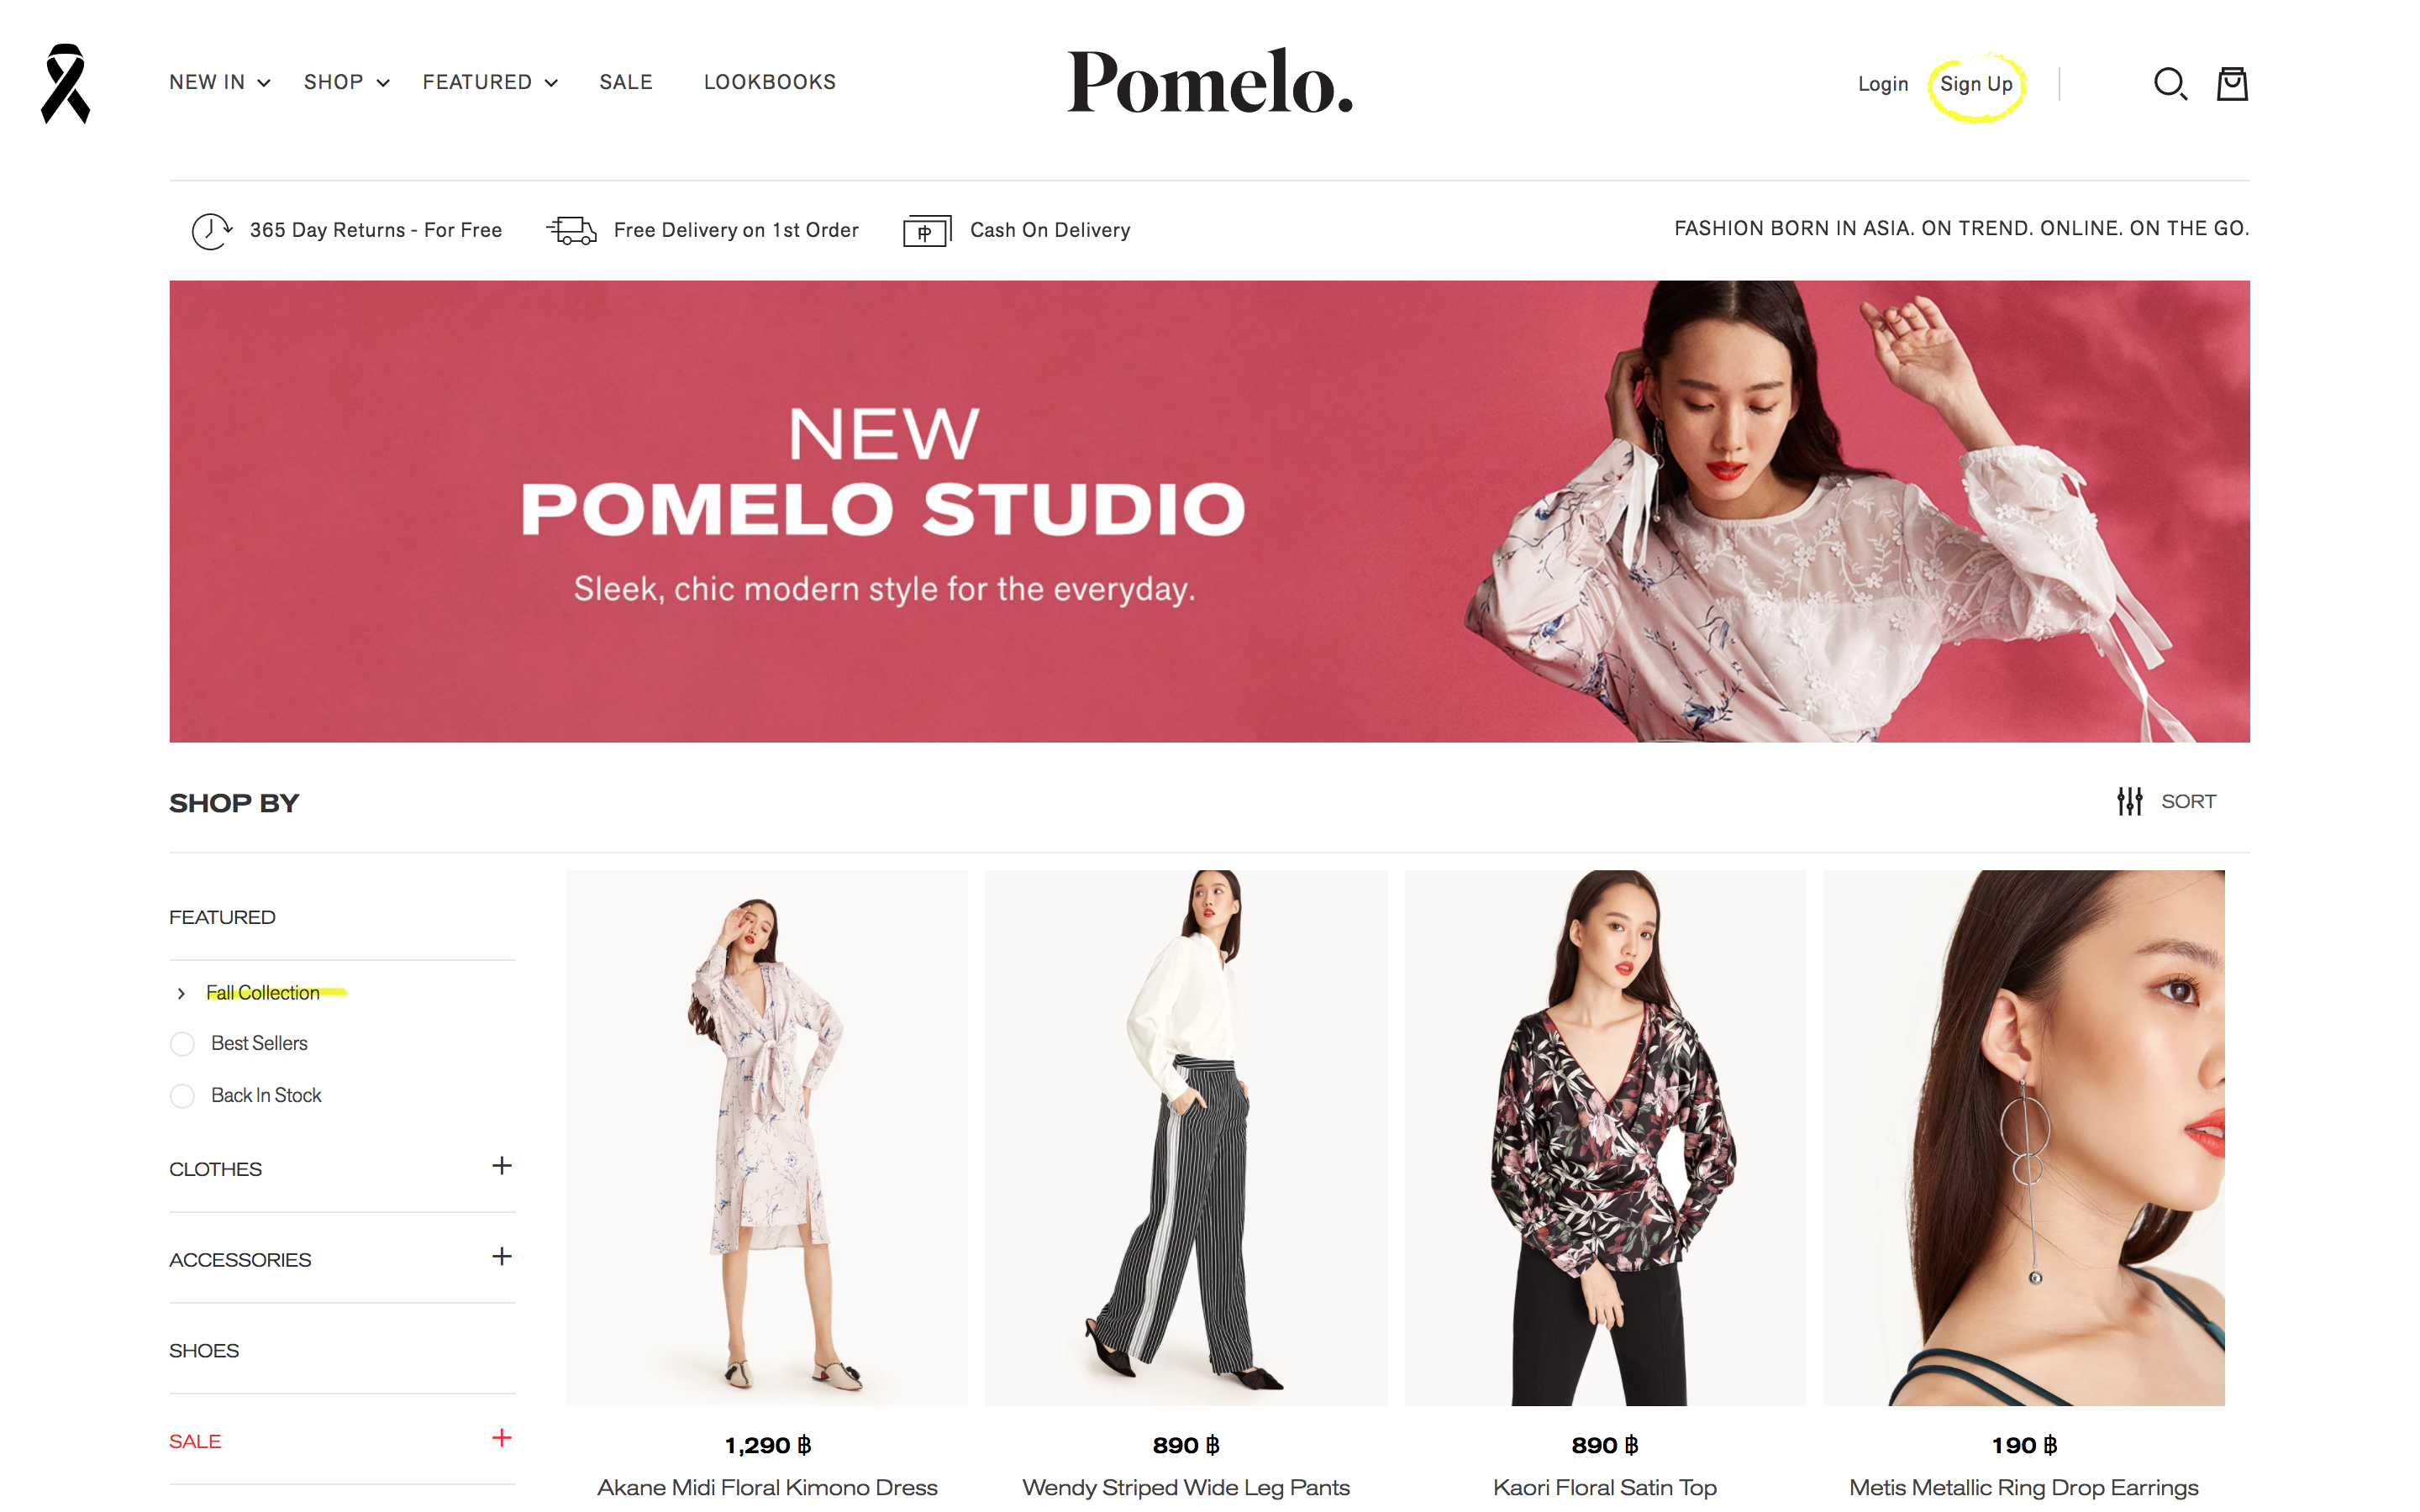 China's JD.com leads $19M investment in Southeast Asian online fashion brand Pomelo